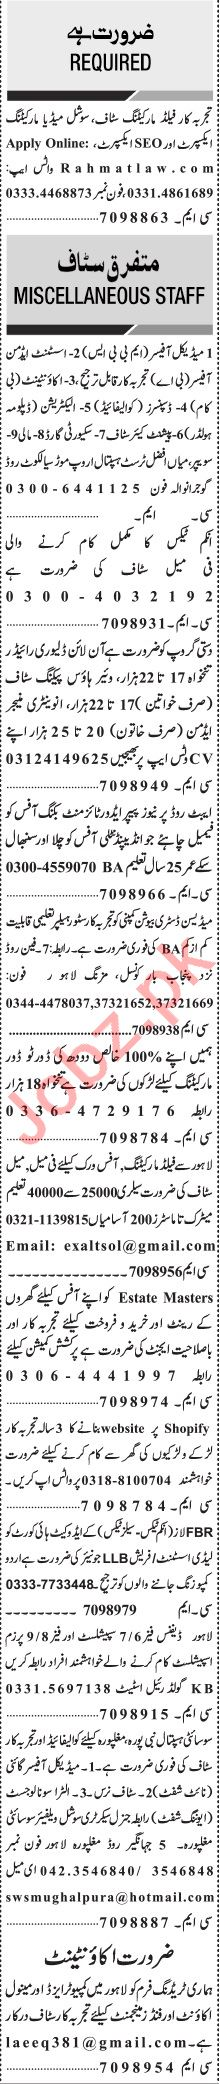 Jang Sunday Classified Ads 9 May 2021 for General Staff